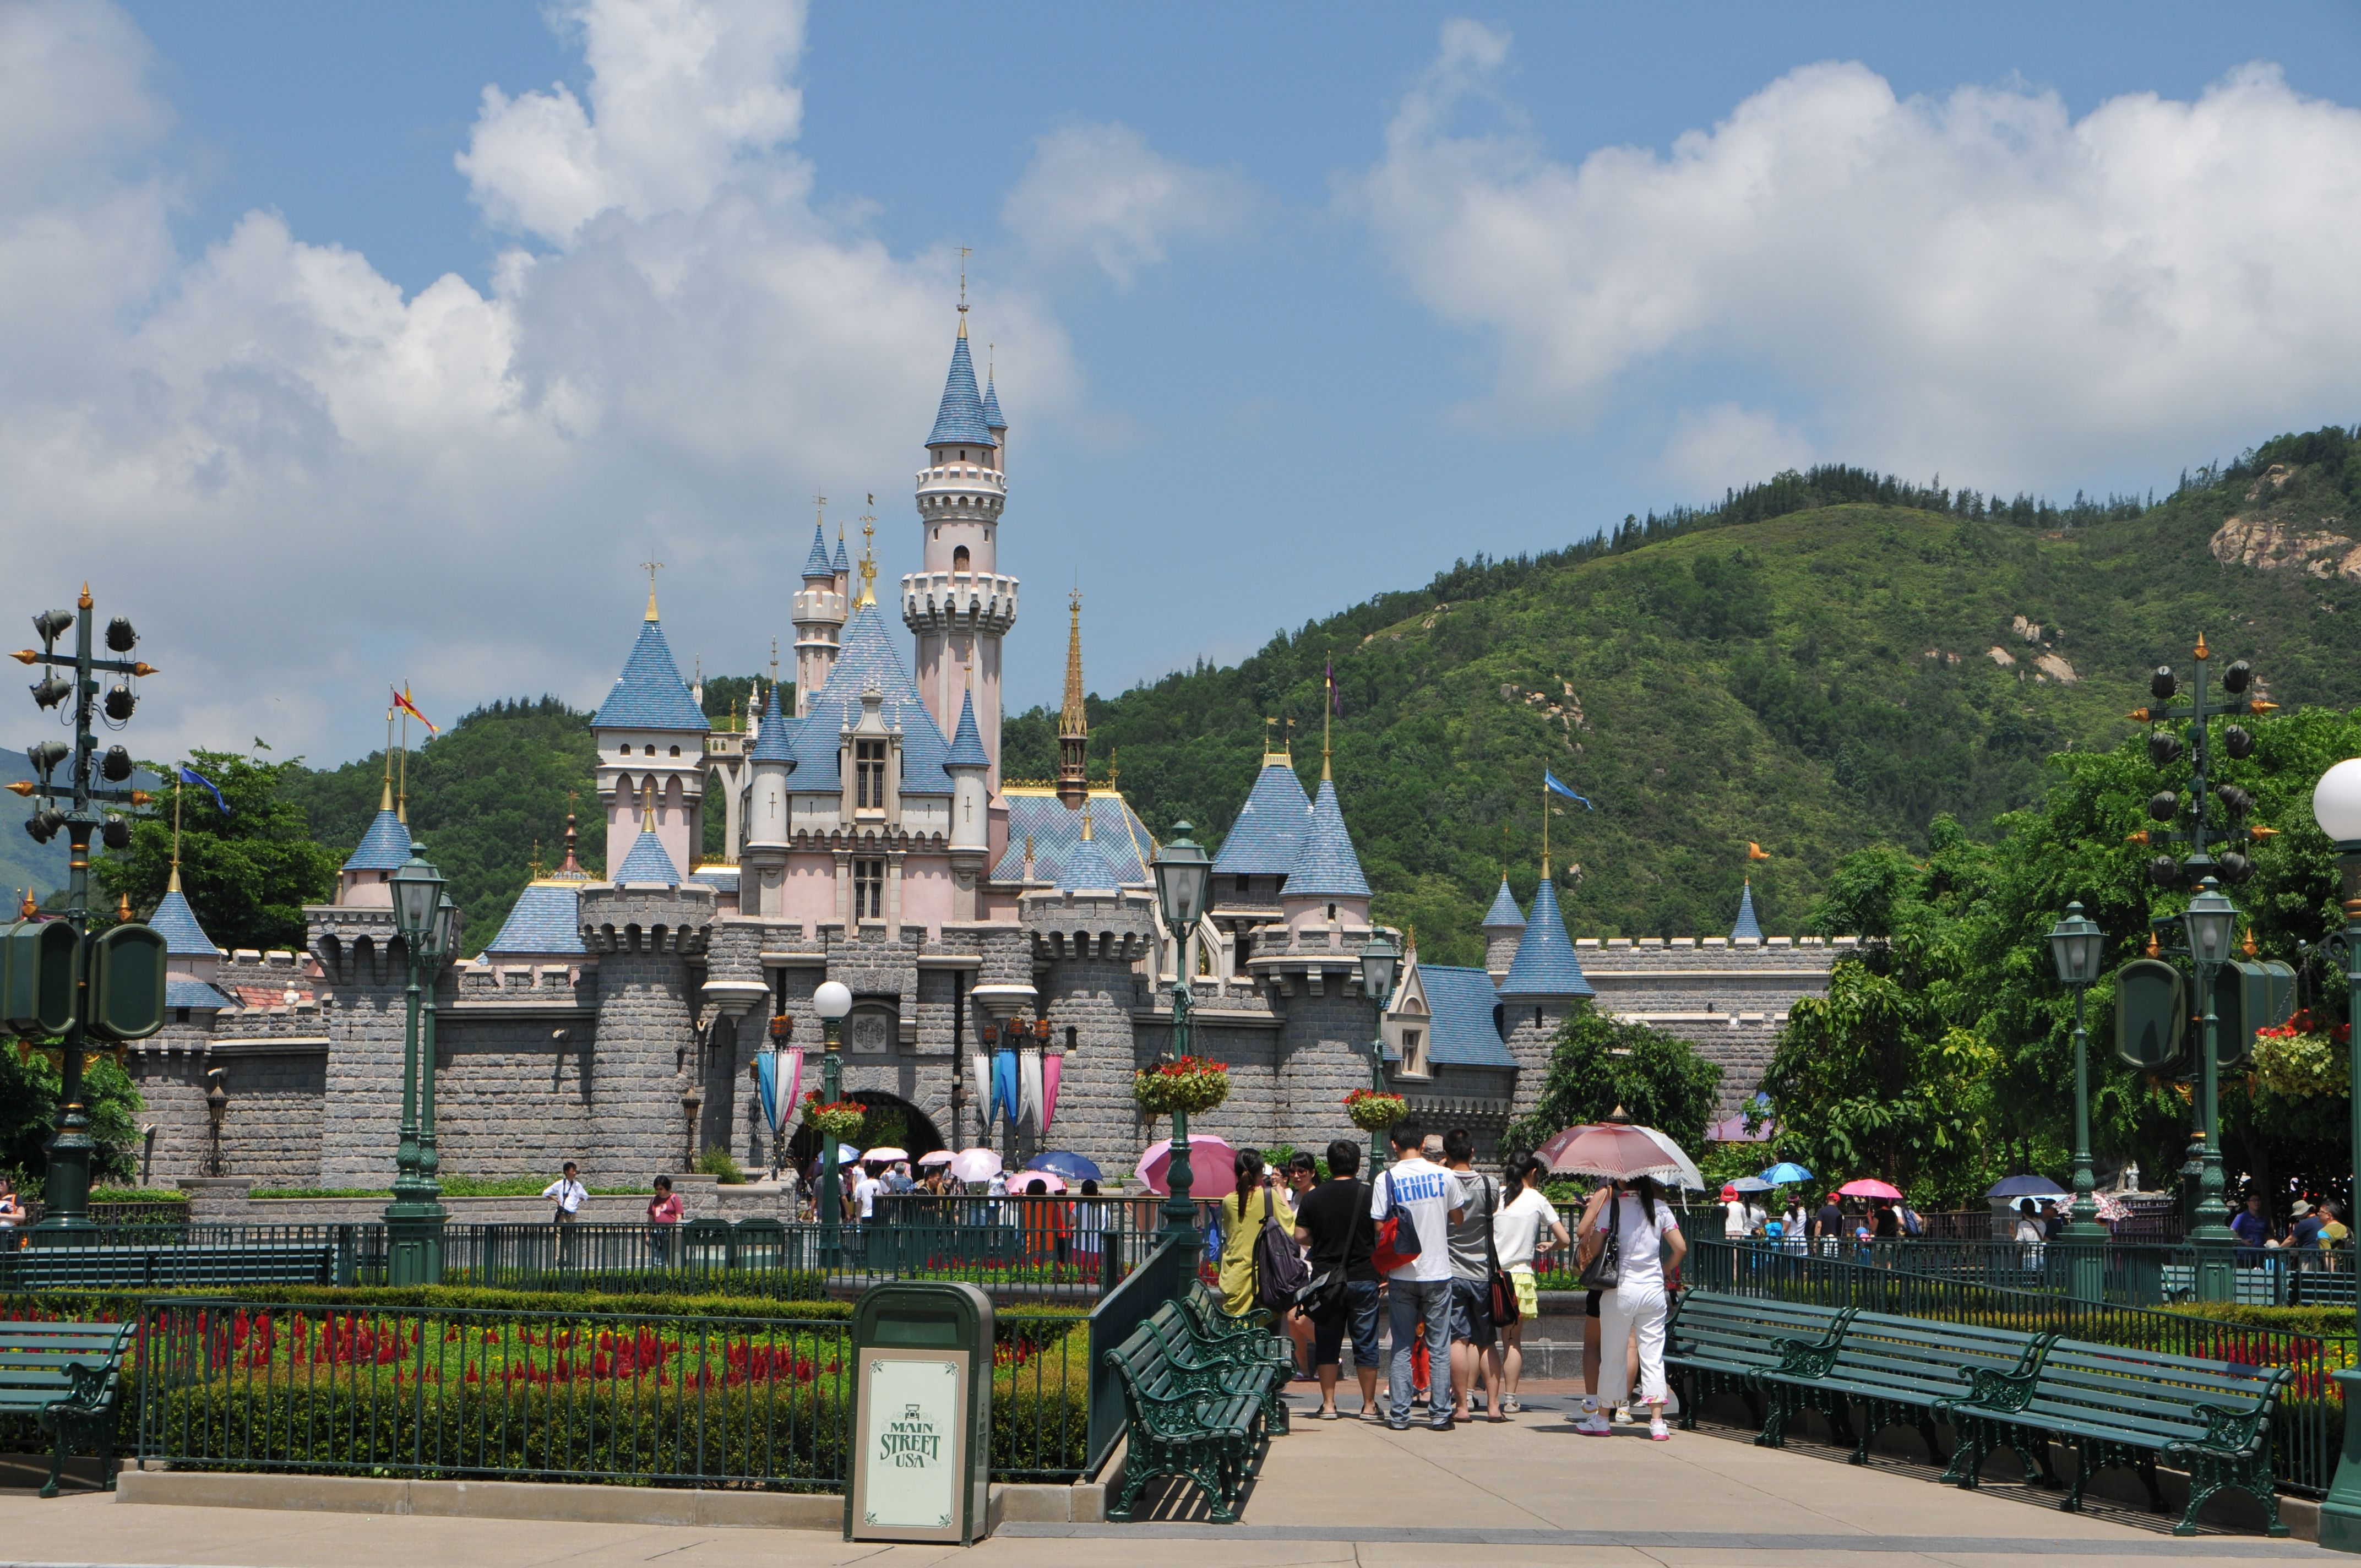 hong kong disney Hong kong disneyland (chinese: 香港迪士尼樂園) is a theme park located on reclaimed land in penny's bay, lantau islandit is located inside the hong kong disneyland resort and it is owned and managed by hong kong international theme parks.